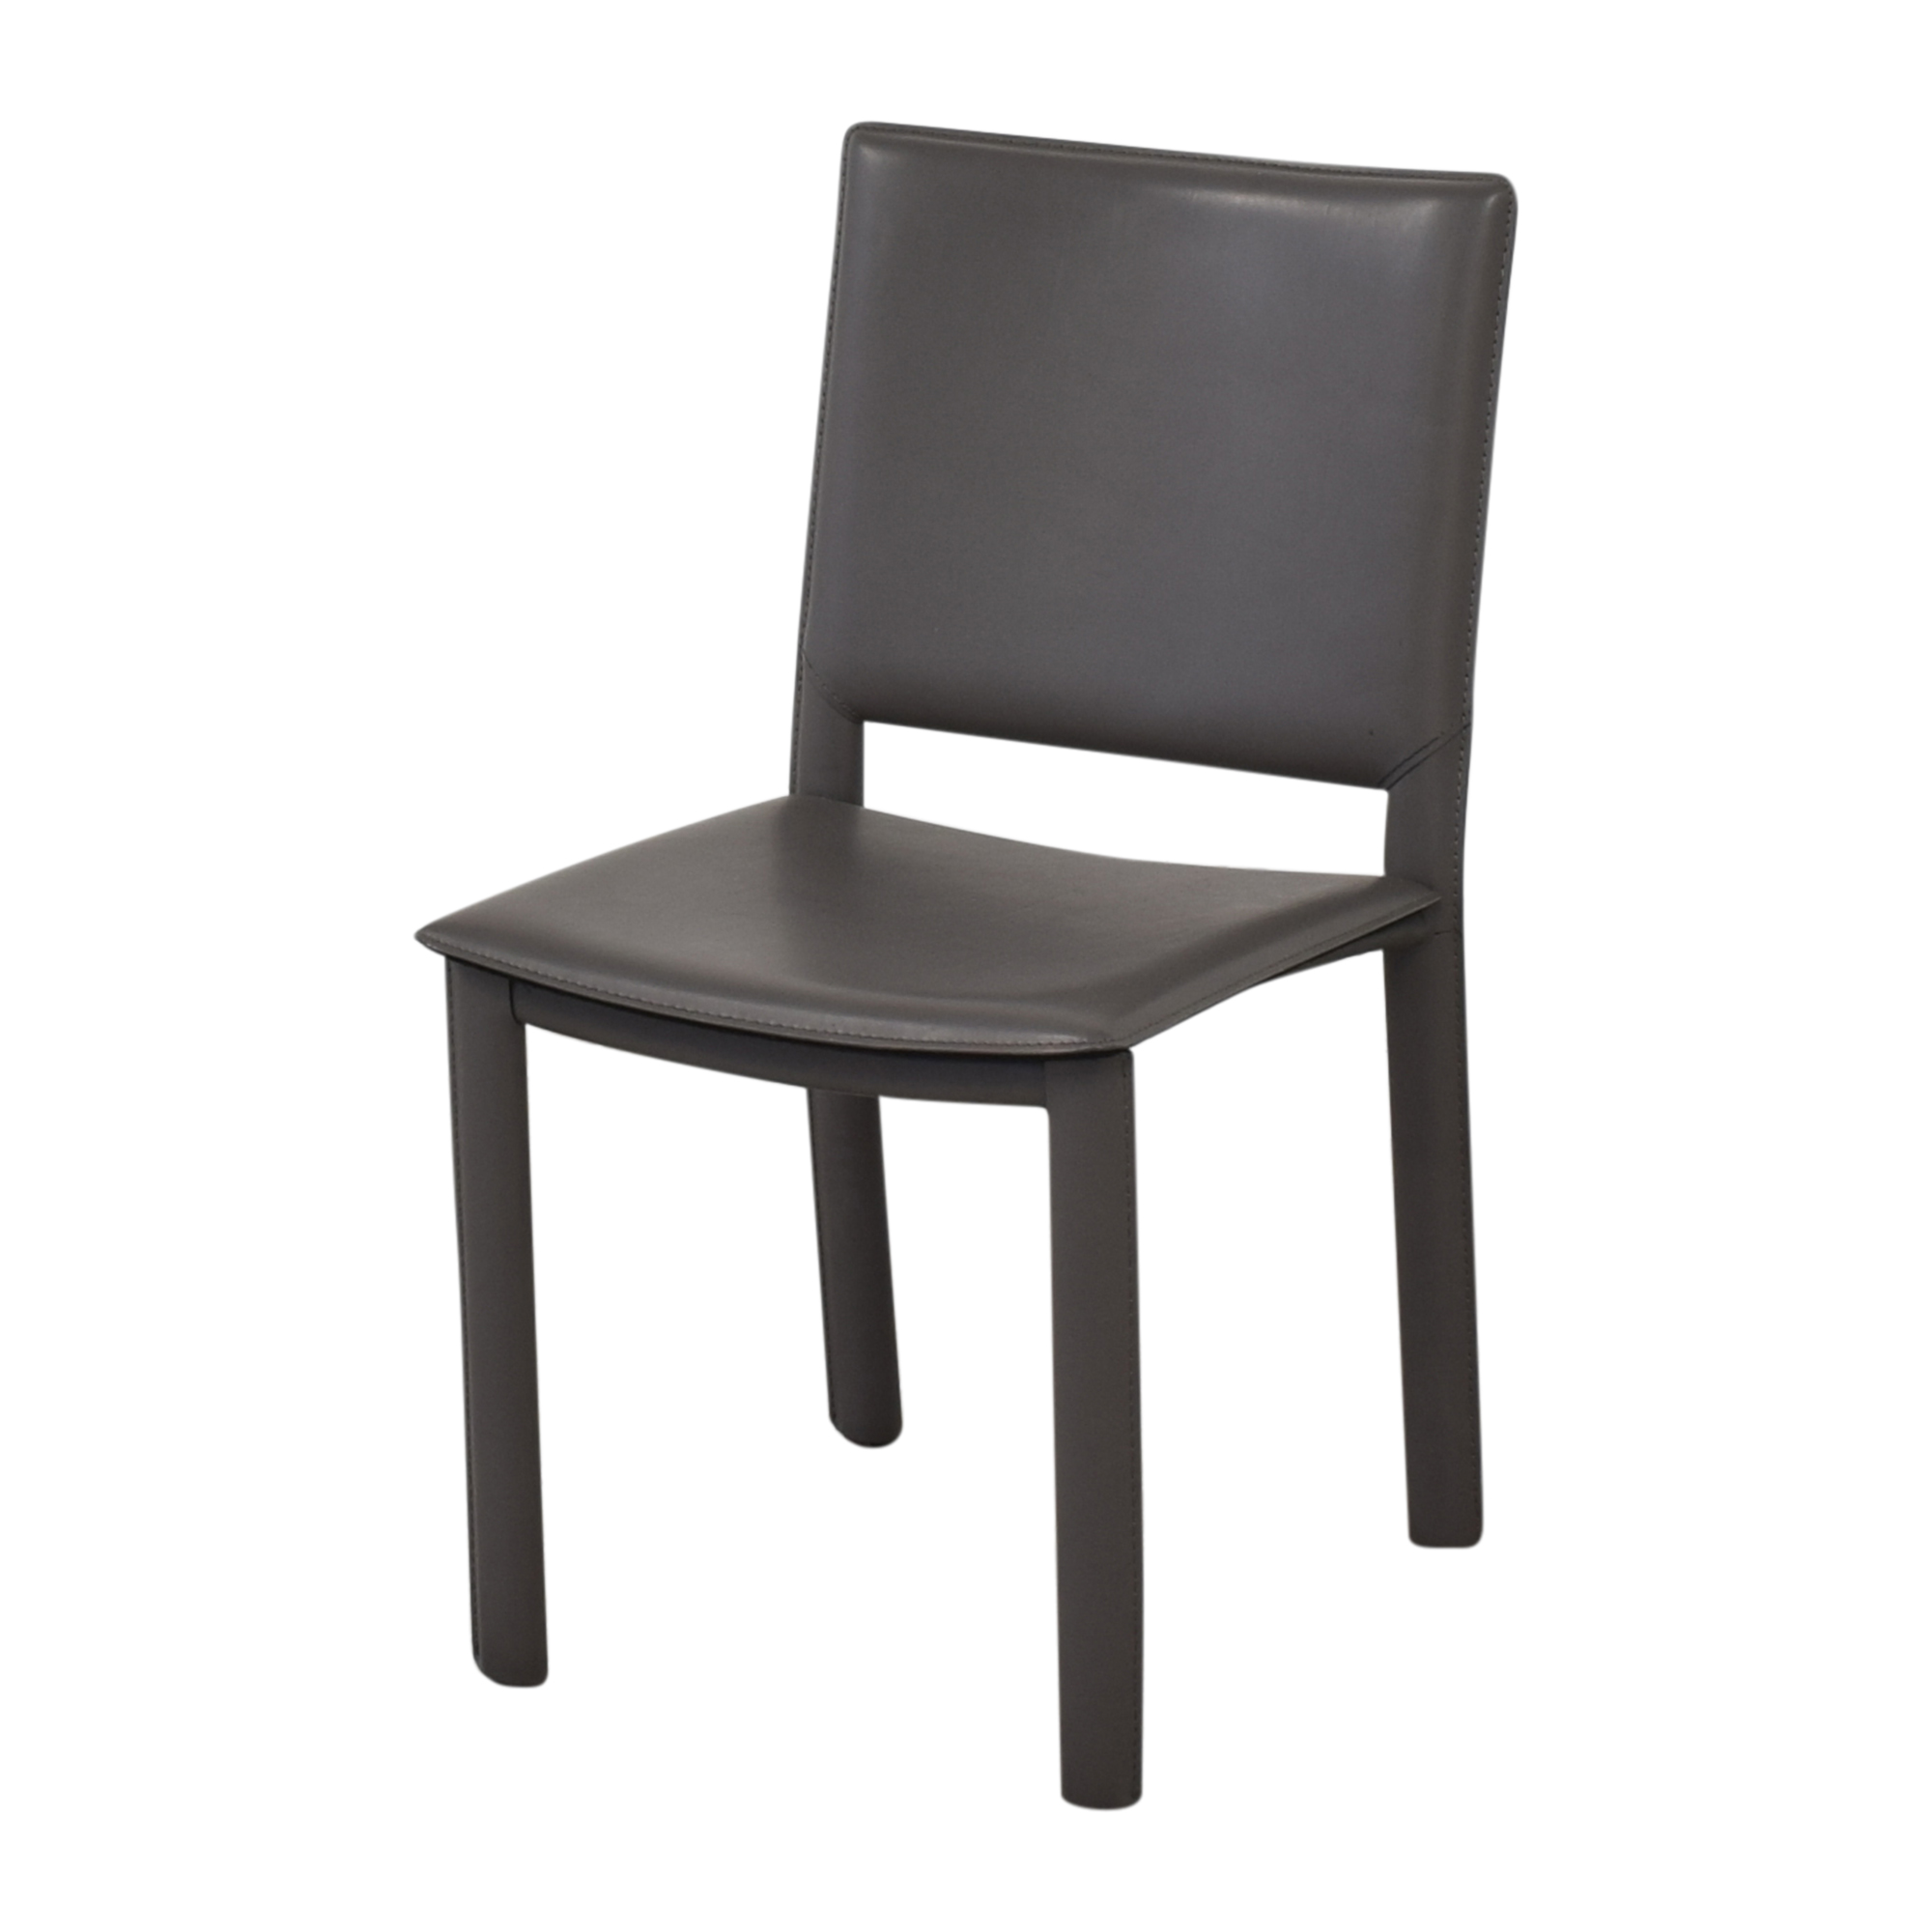 Room & Board Room & Board Madrid Dining Chairs discount